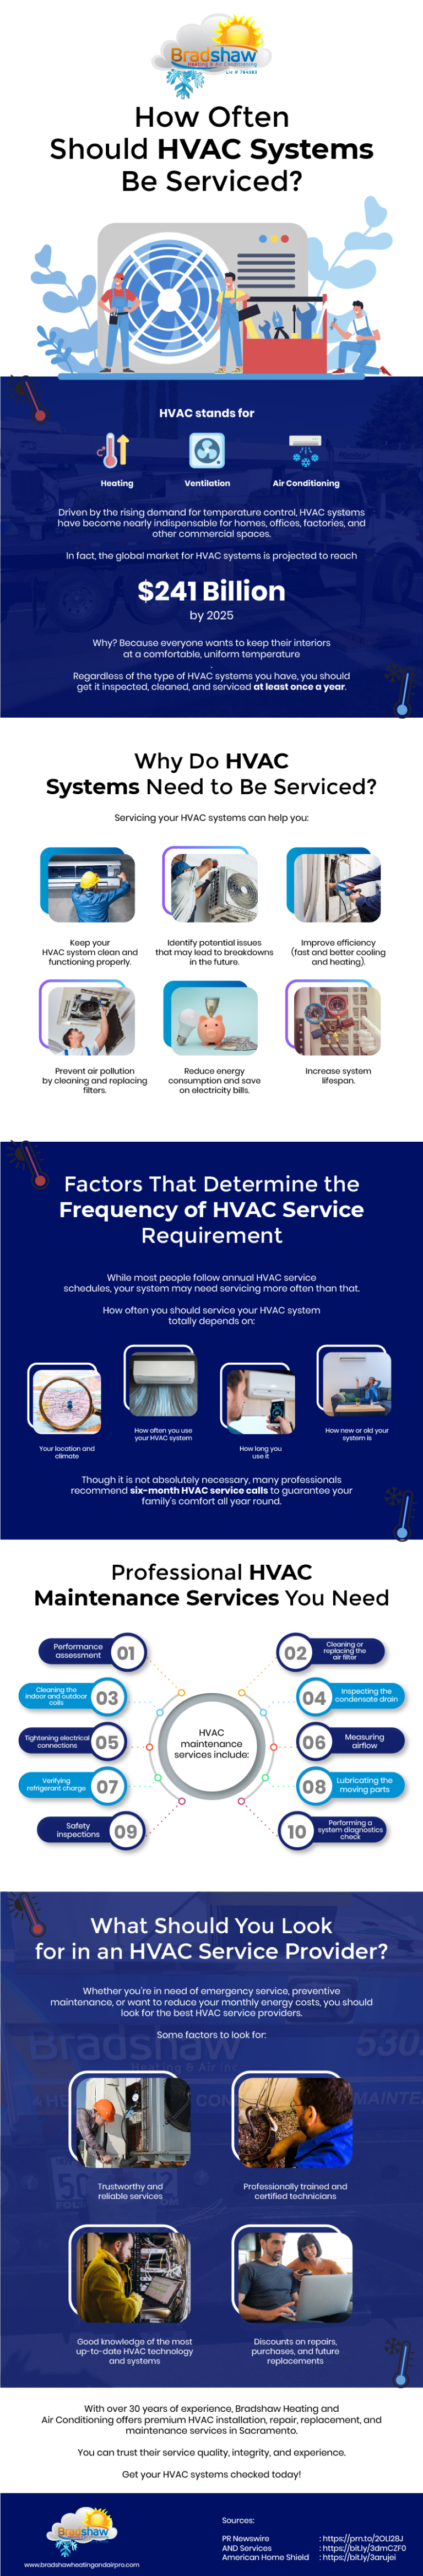 How Often Should HVAC Systems Be Serviced?